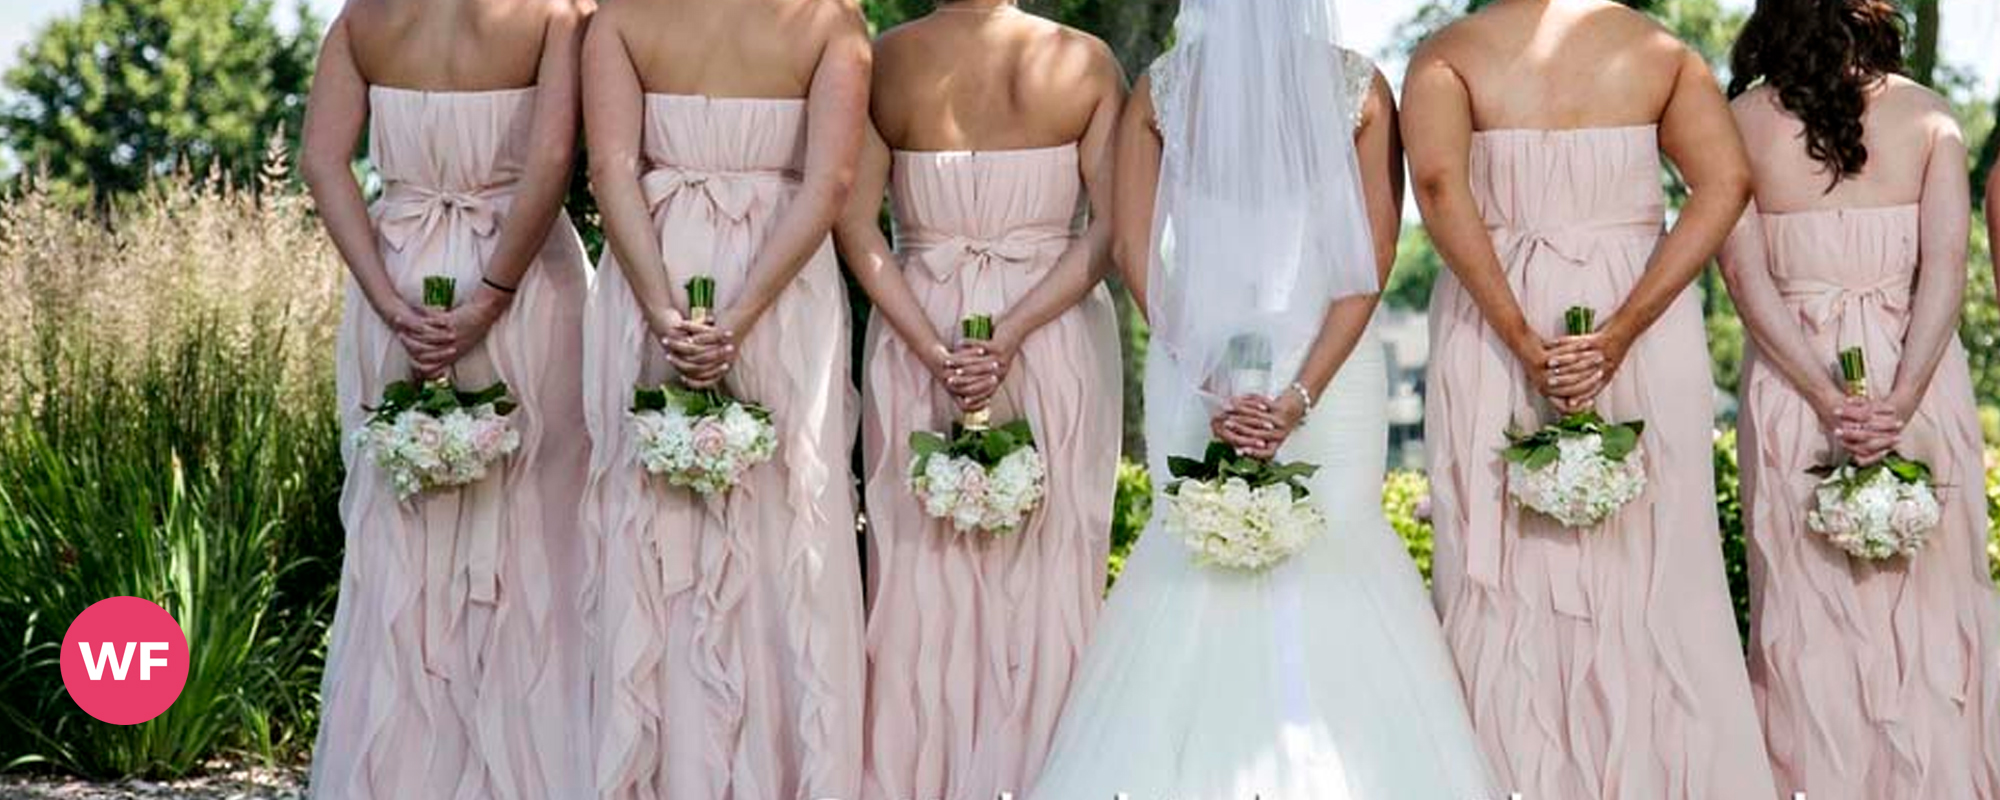 Bridesmaid pictures you'll regret not taking